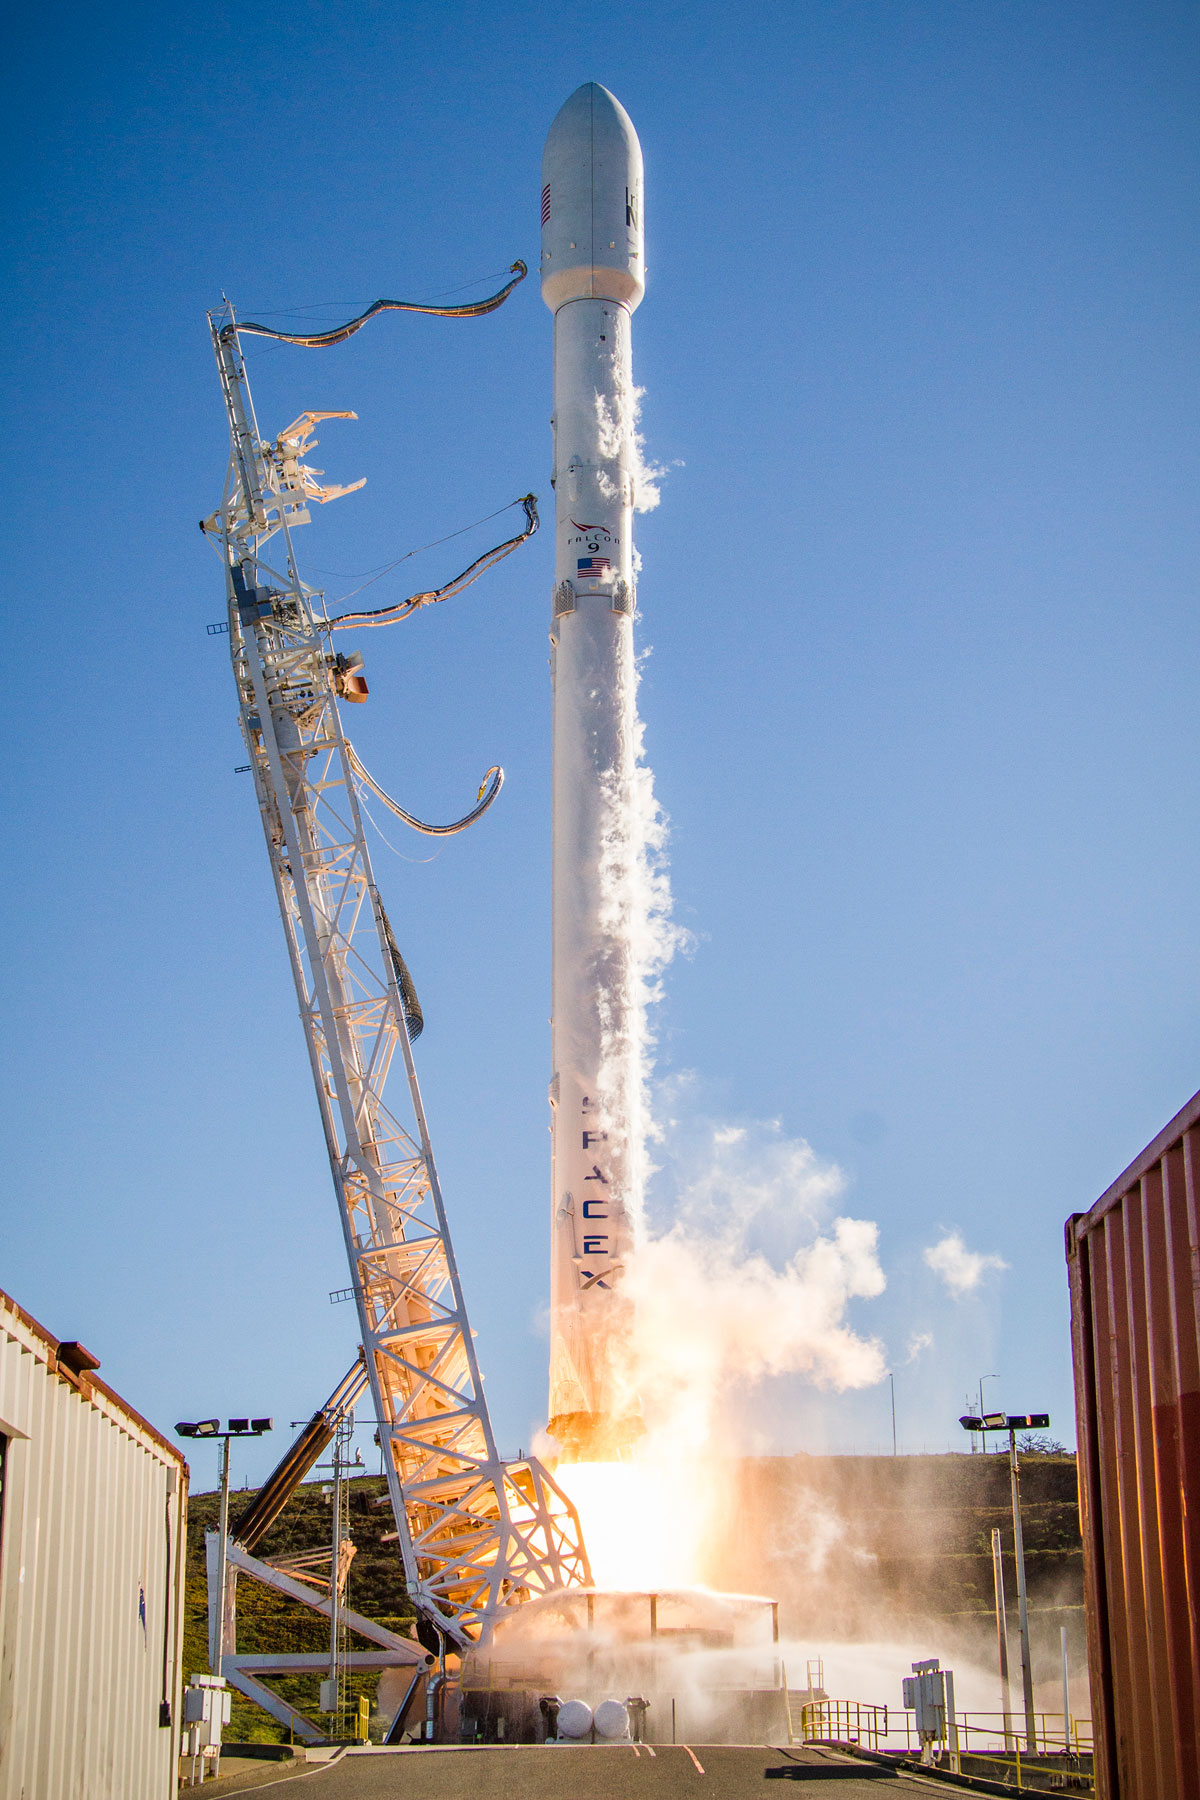 spacex launch and land january 2017 10 14 Amazing HQ Photos from SpaceXs Successful Launch and Landing